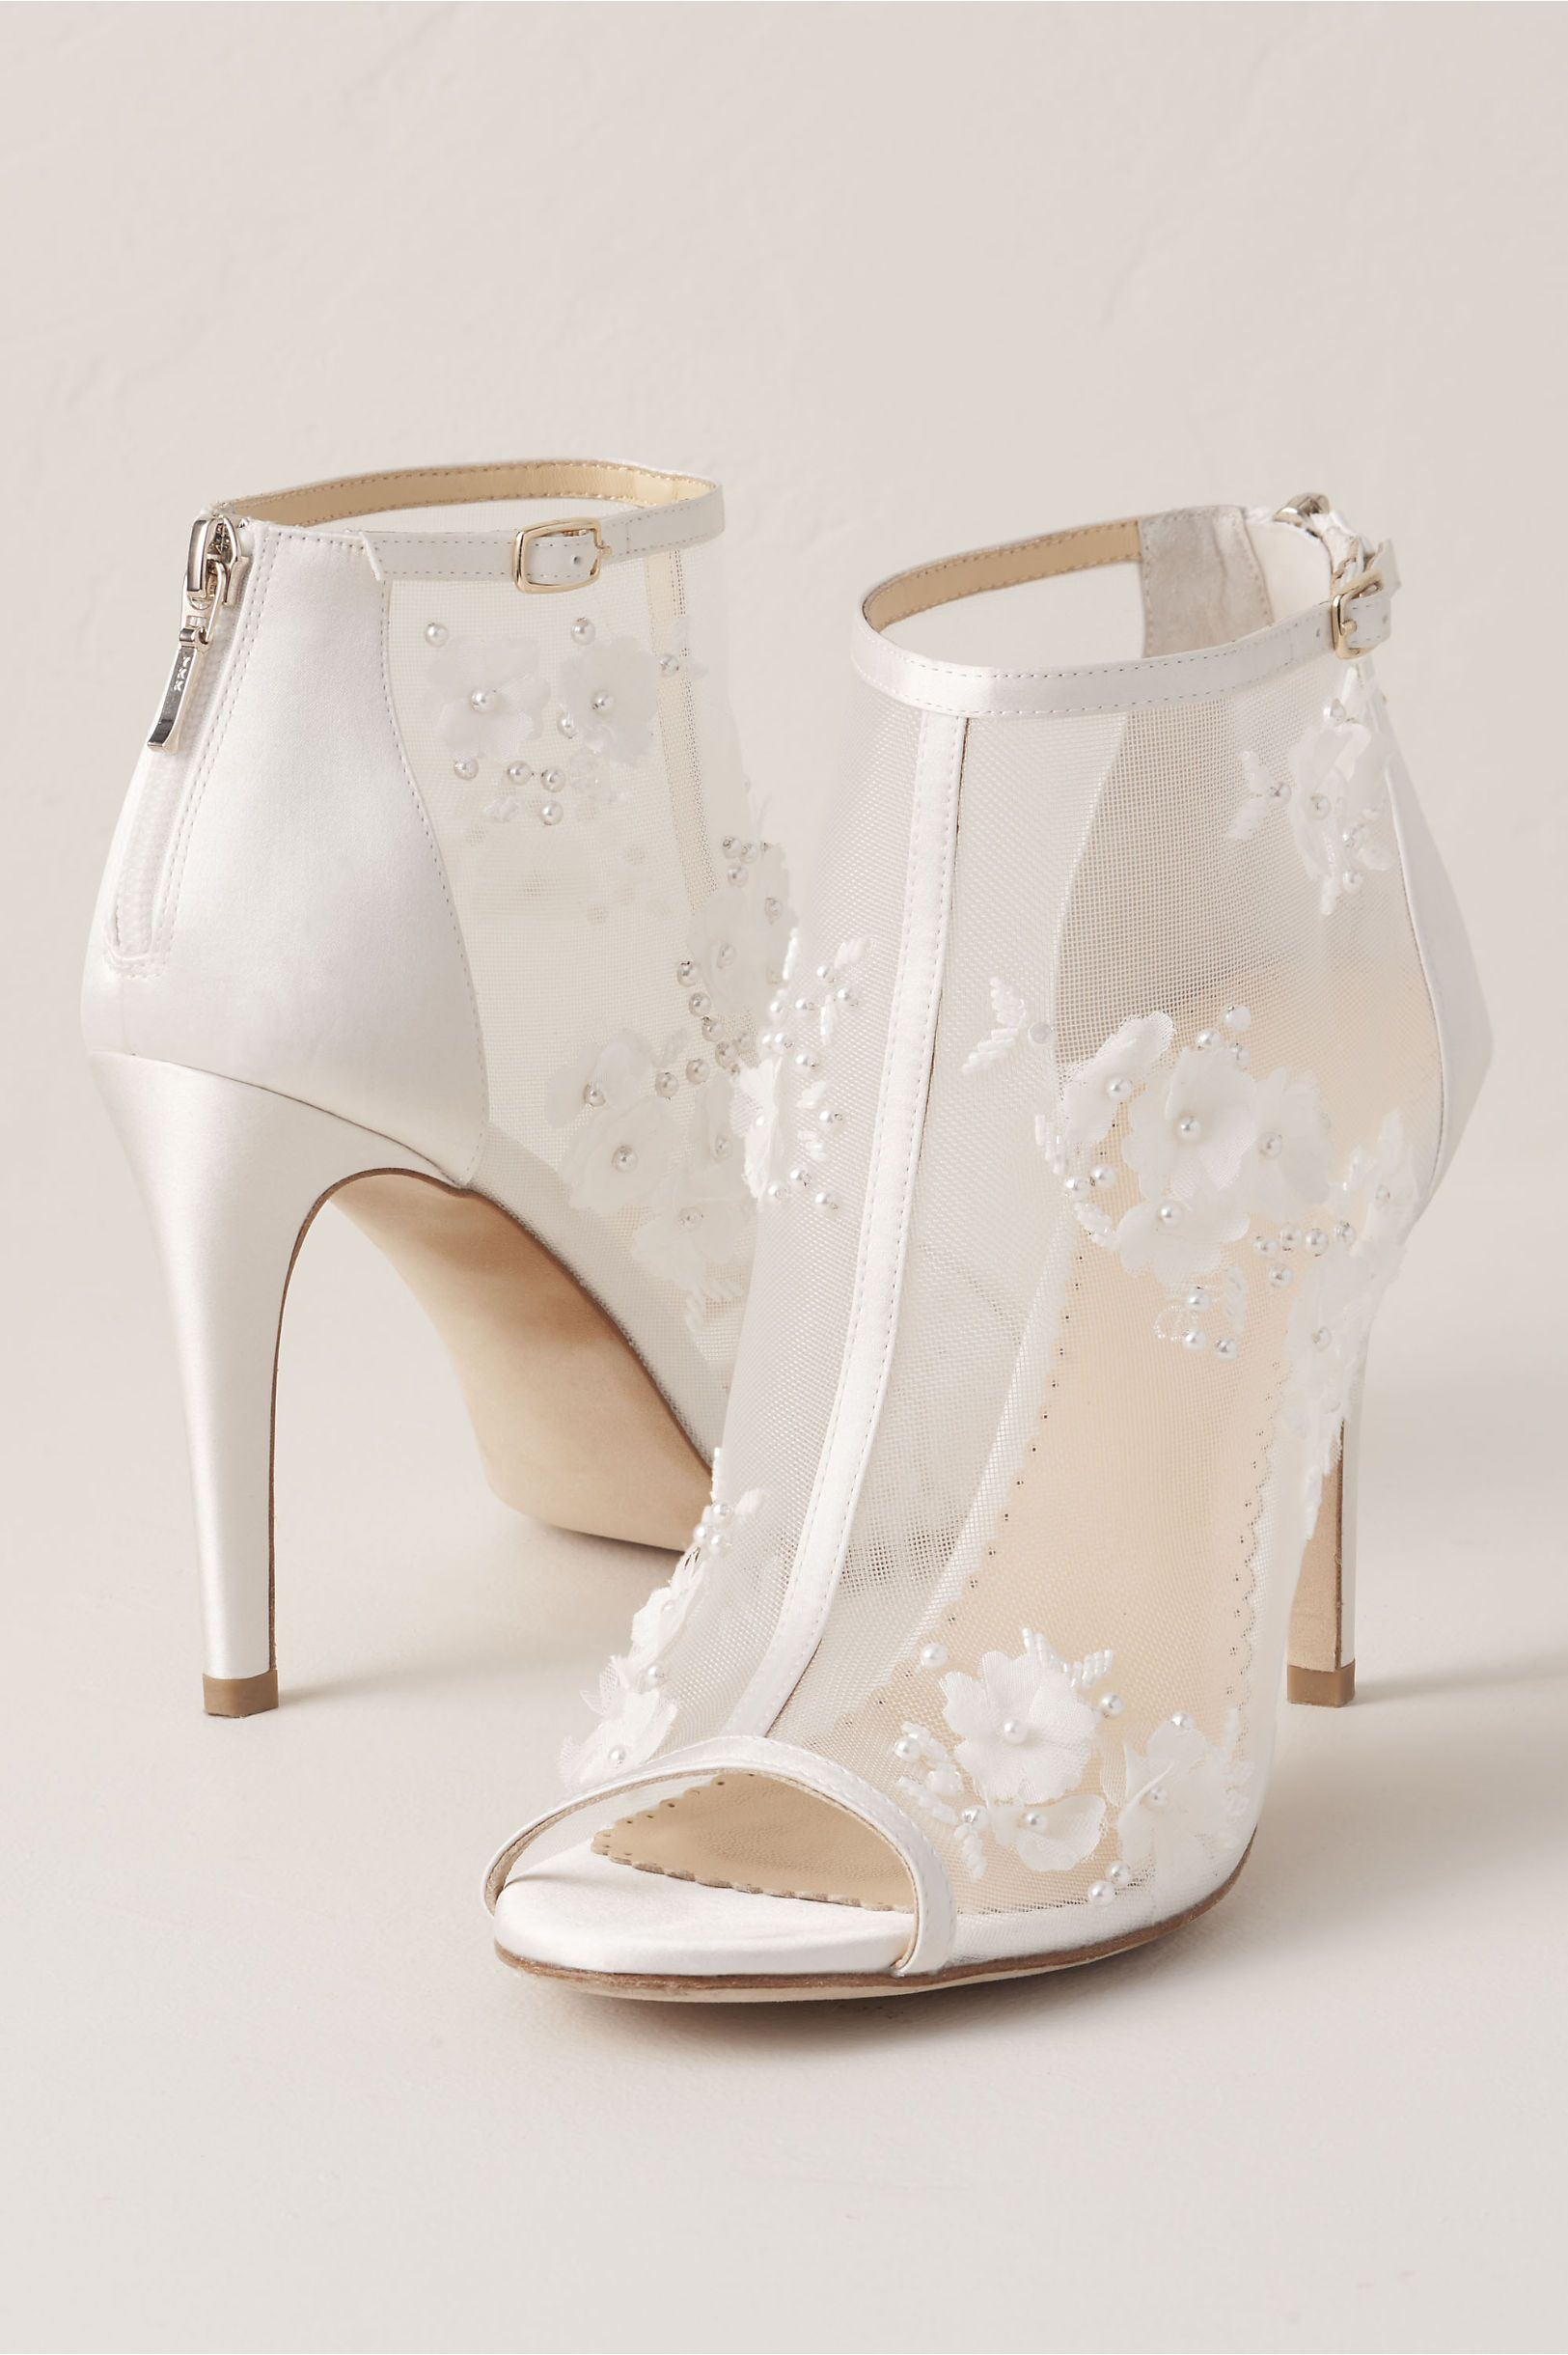 Bella Belle Floral Chiffon Bootie In 2020 Bridal Shoes White Wedding Shoes Wedding Boots